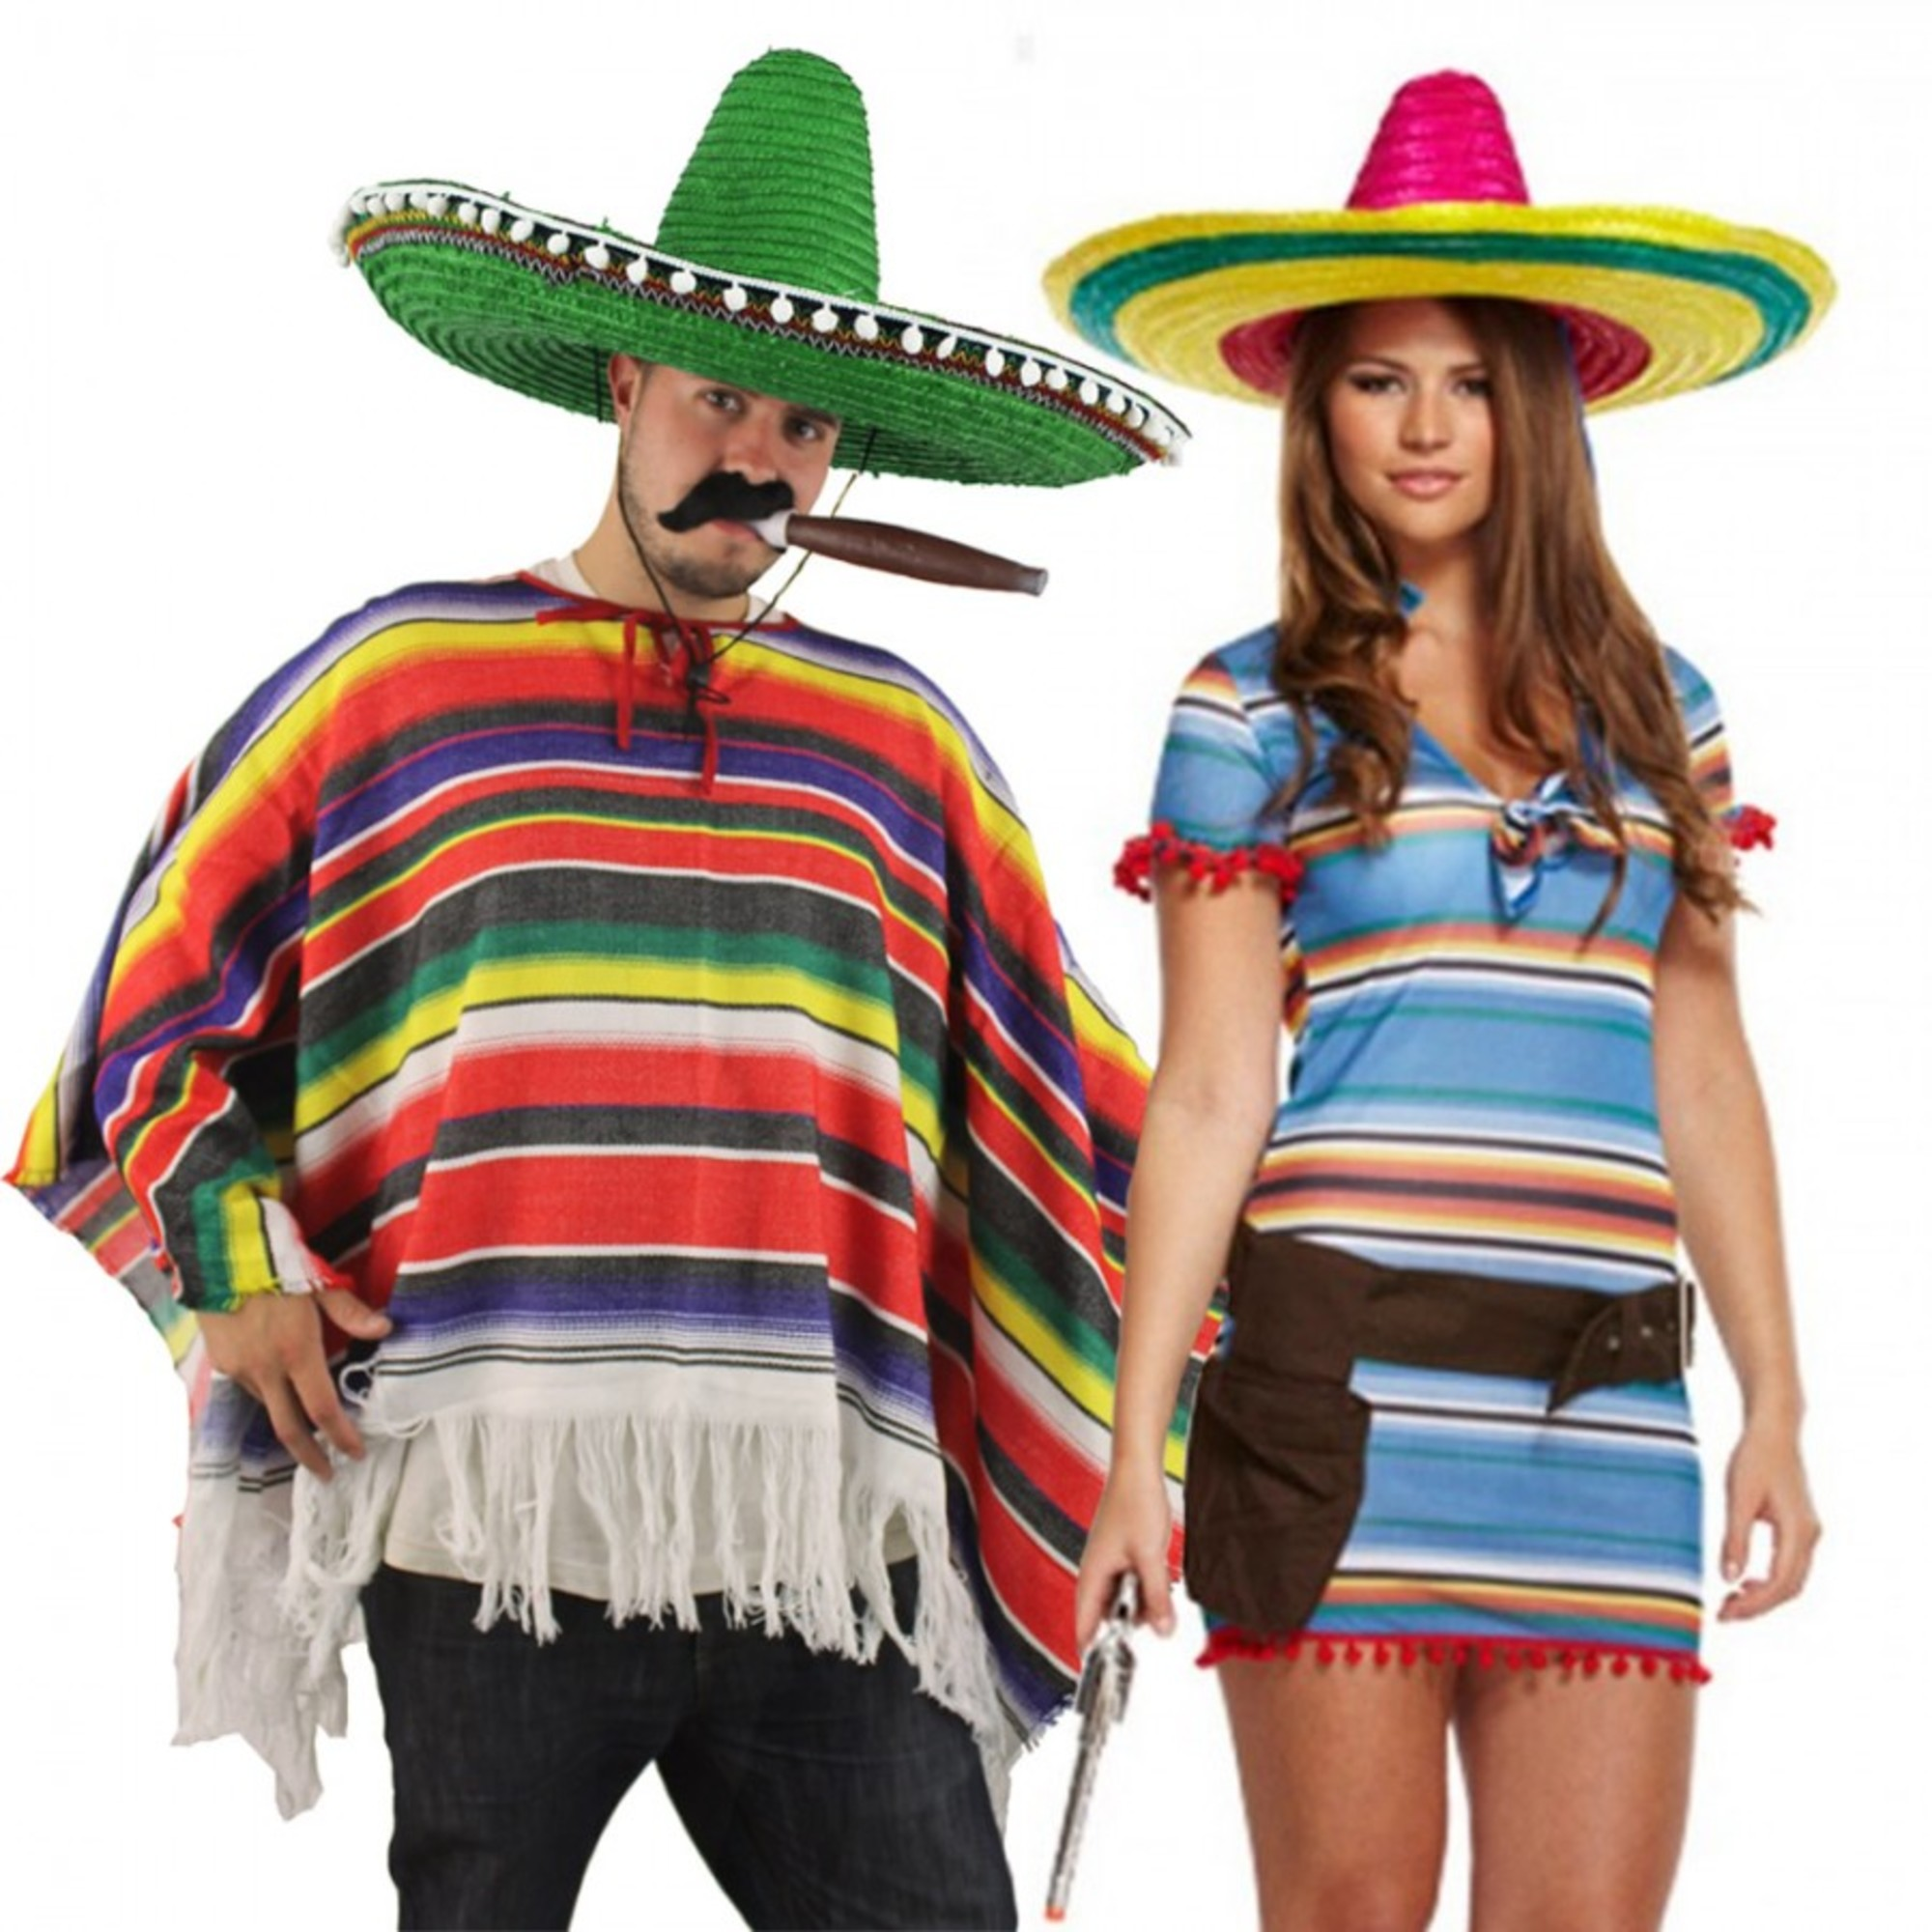 Cultural Appropriation: Is It Bad?